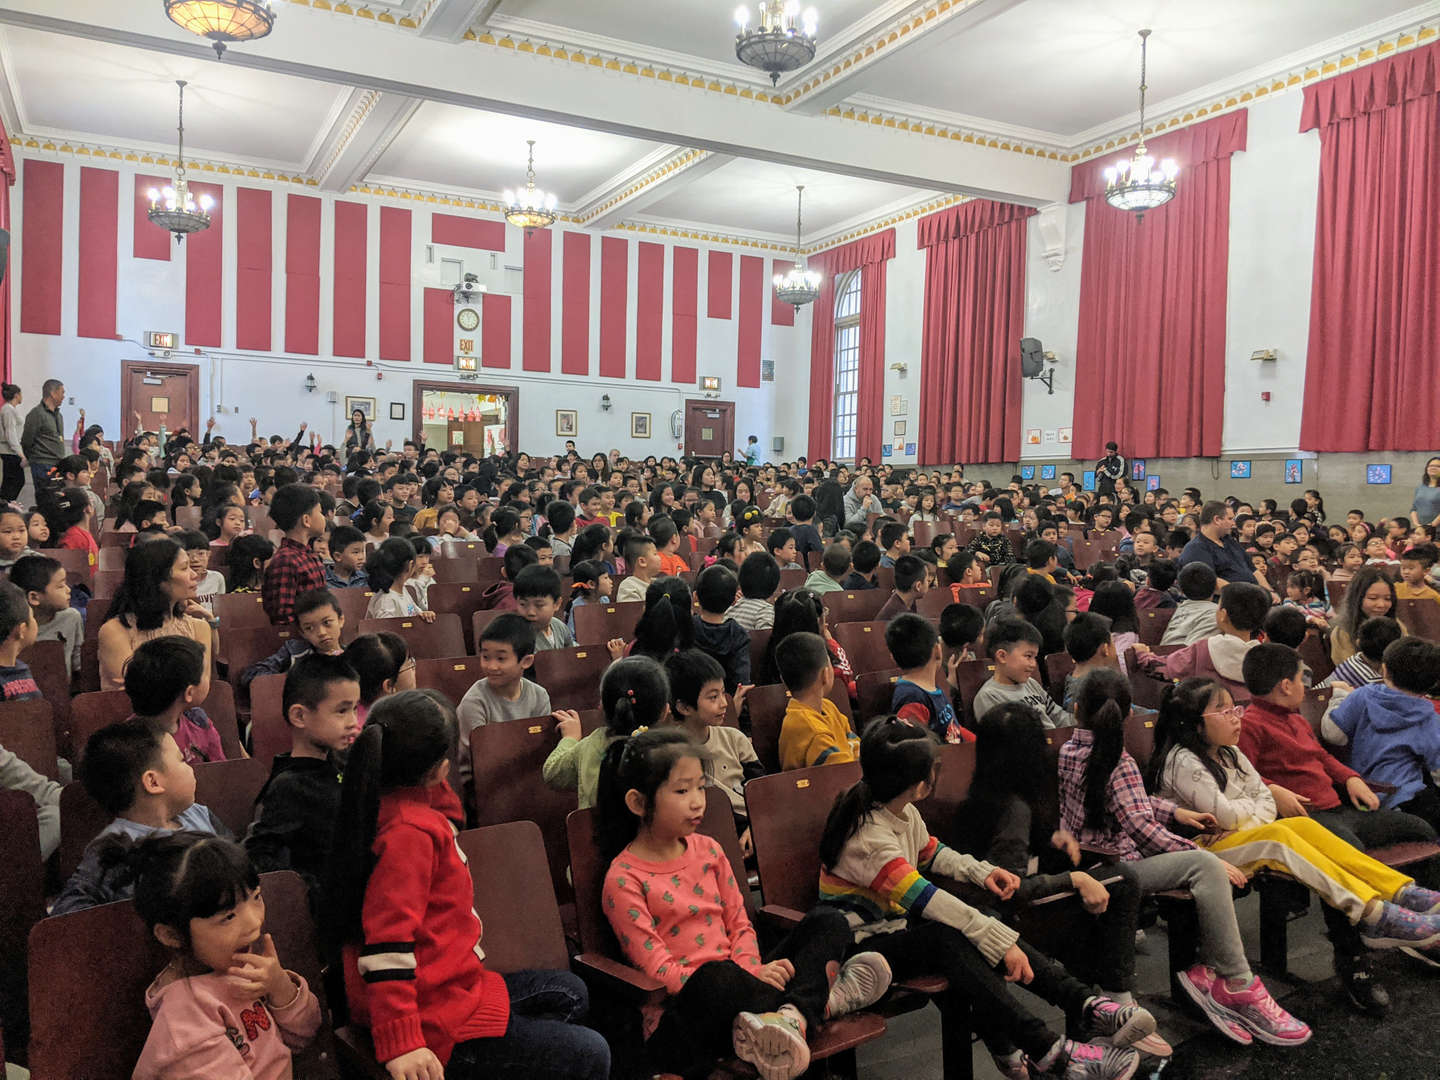 Students waiting in the school auditorium.